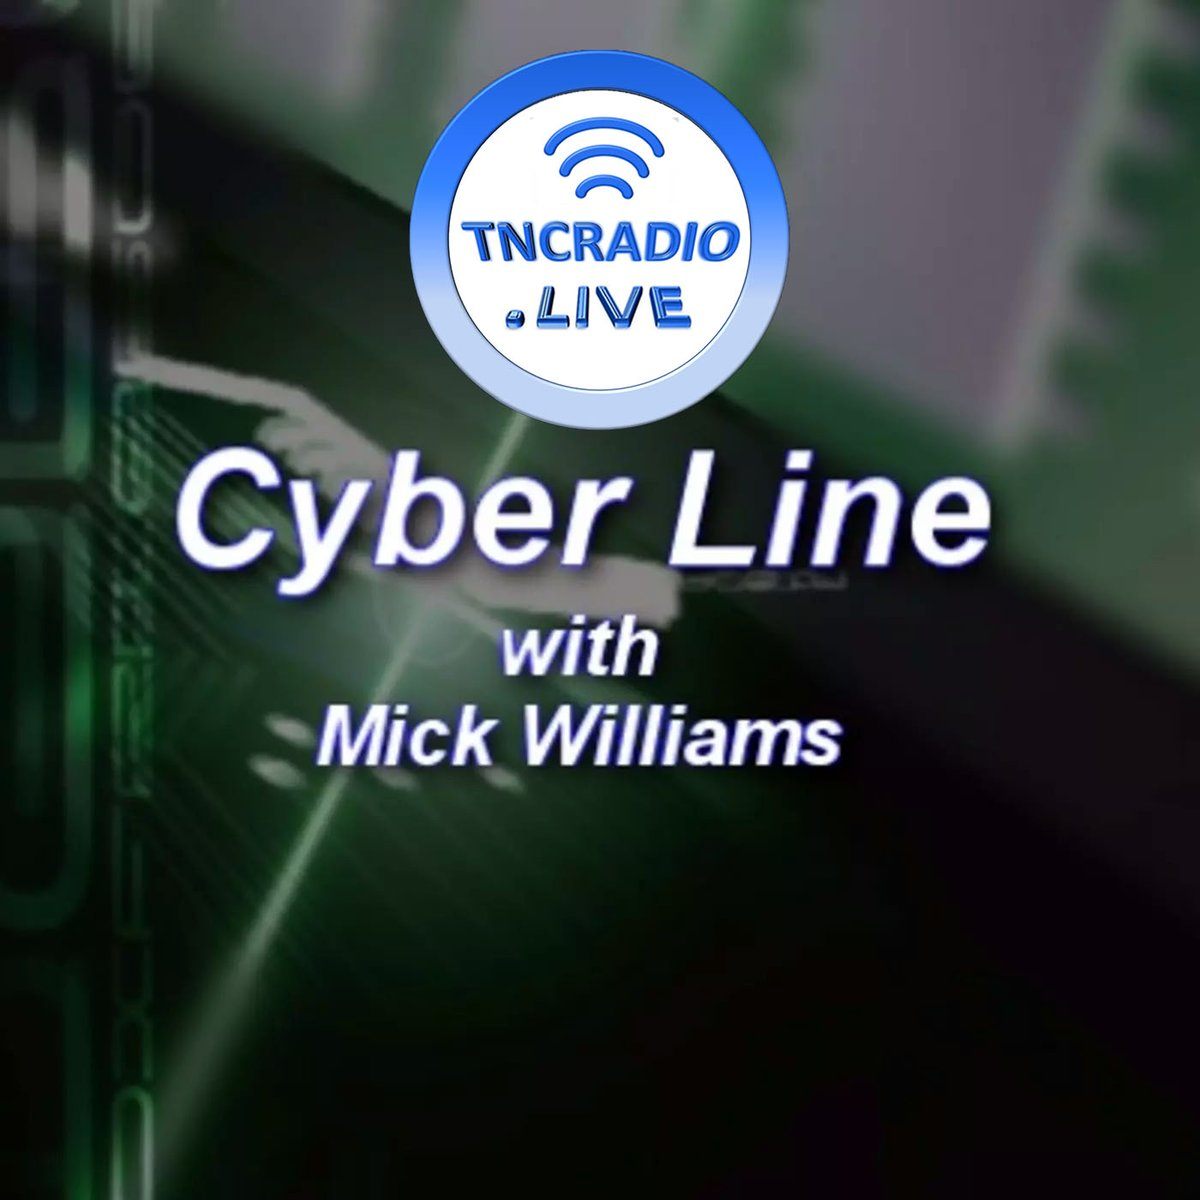 #Drivers #Truckers #techies - How is the latest #technology affecting you? - Get the latest from Cyber-guru Mick Williams on #CyberLineUSA from 9 to 11 p.m. CST on